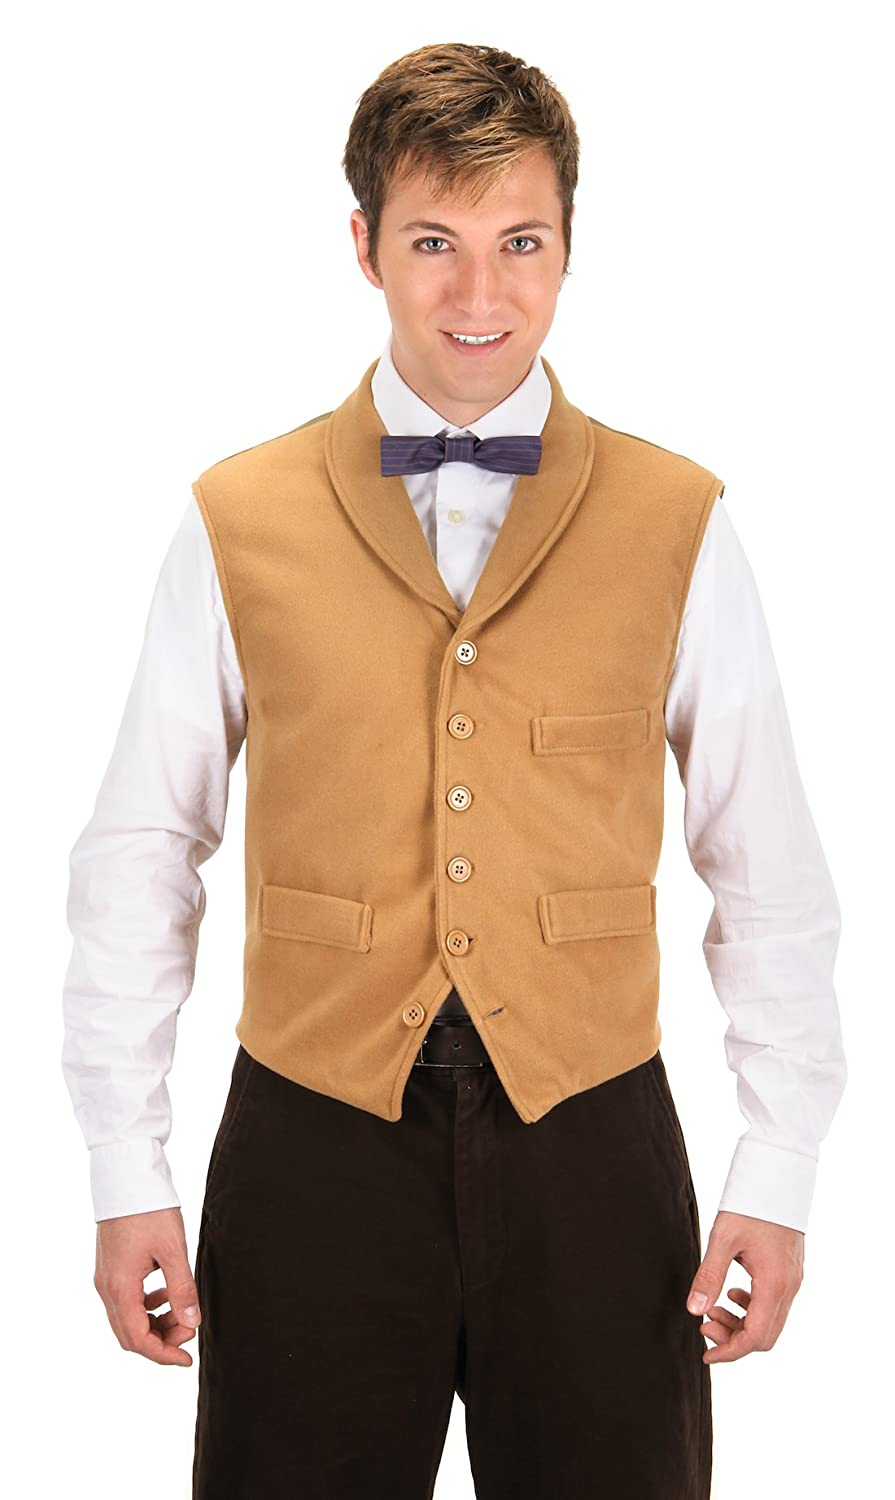 Men's Vintage Inspired Vests- 1920s, 1930s, 1940s, 1950s